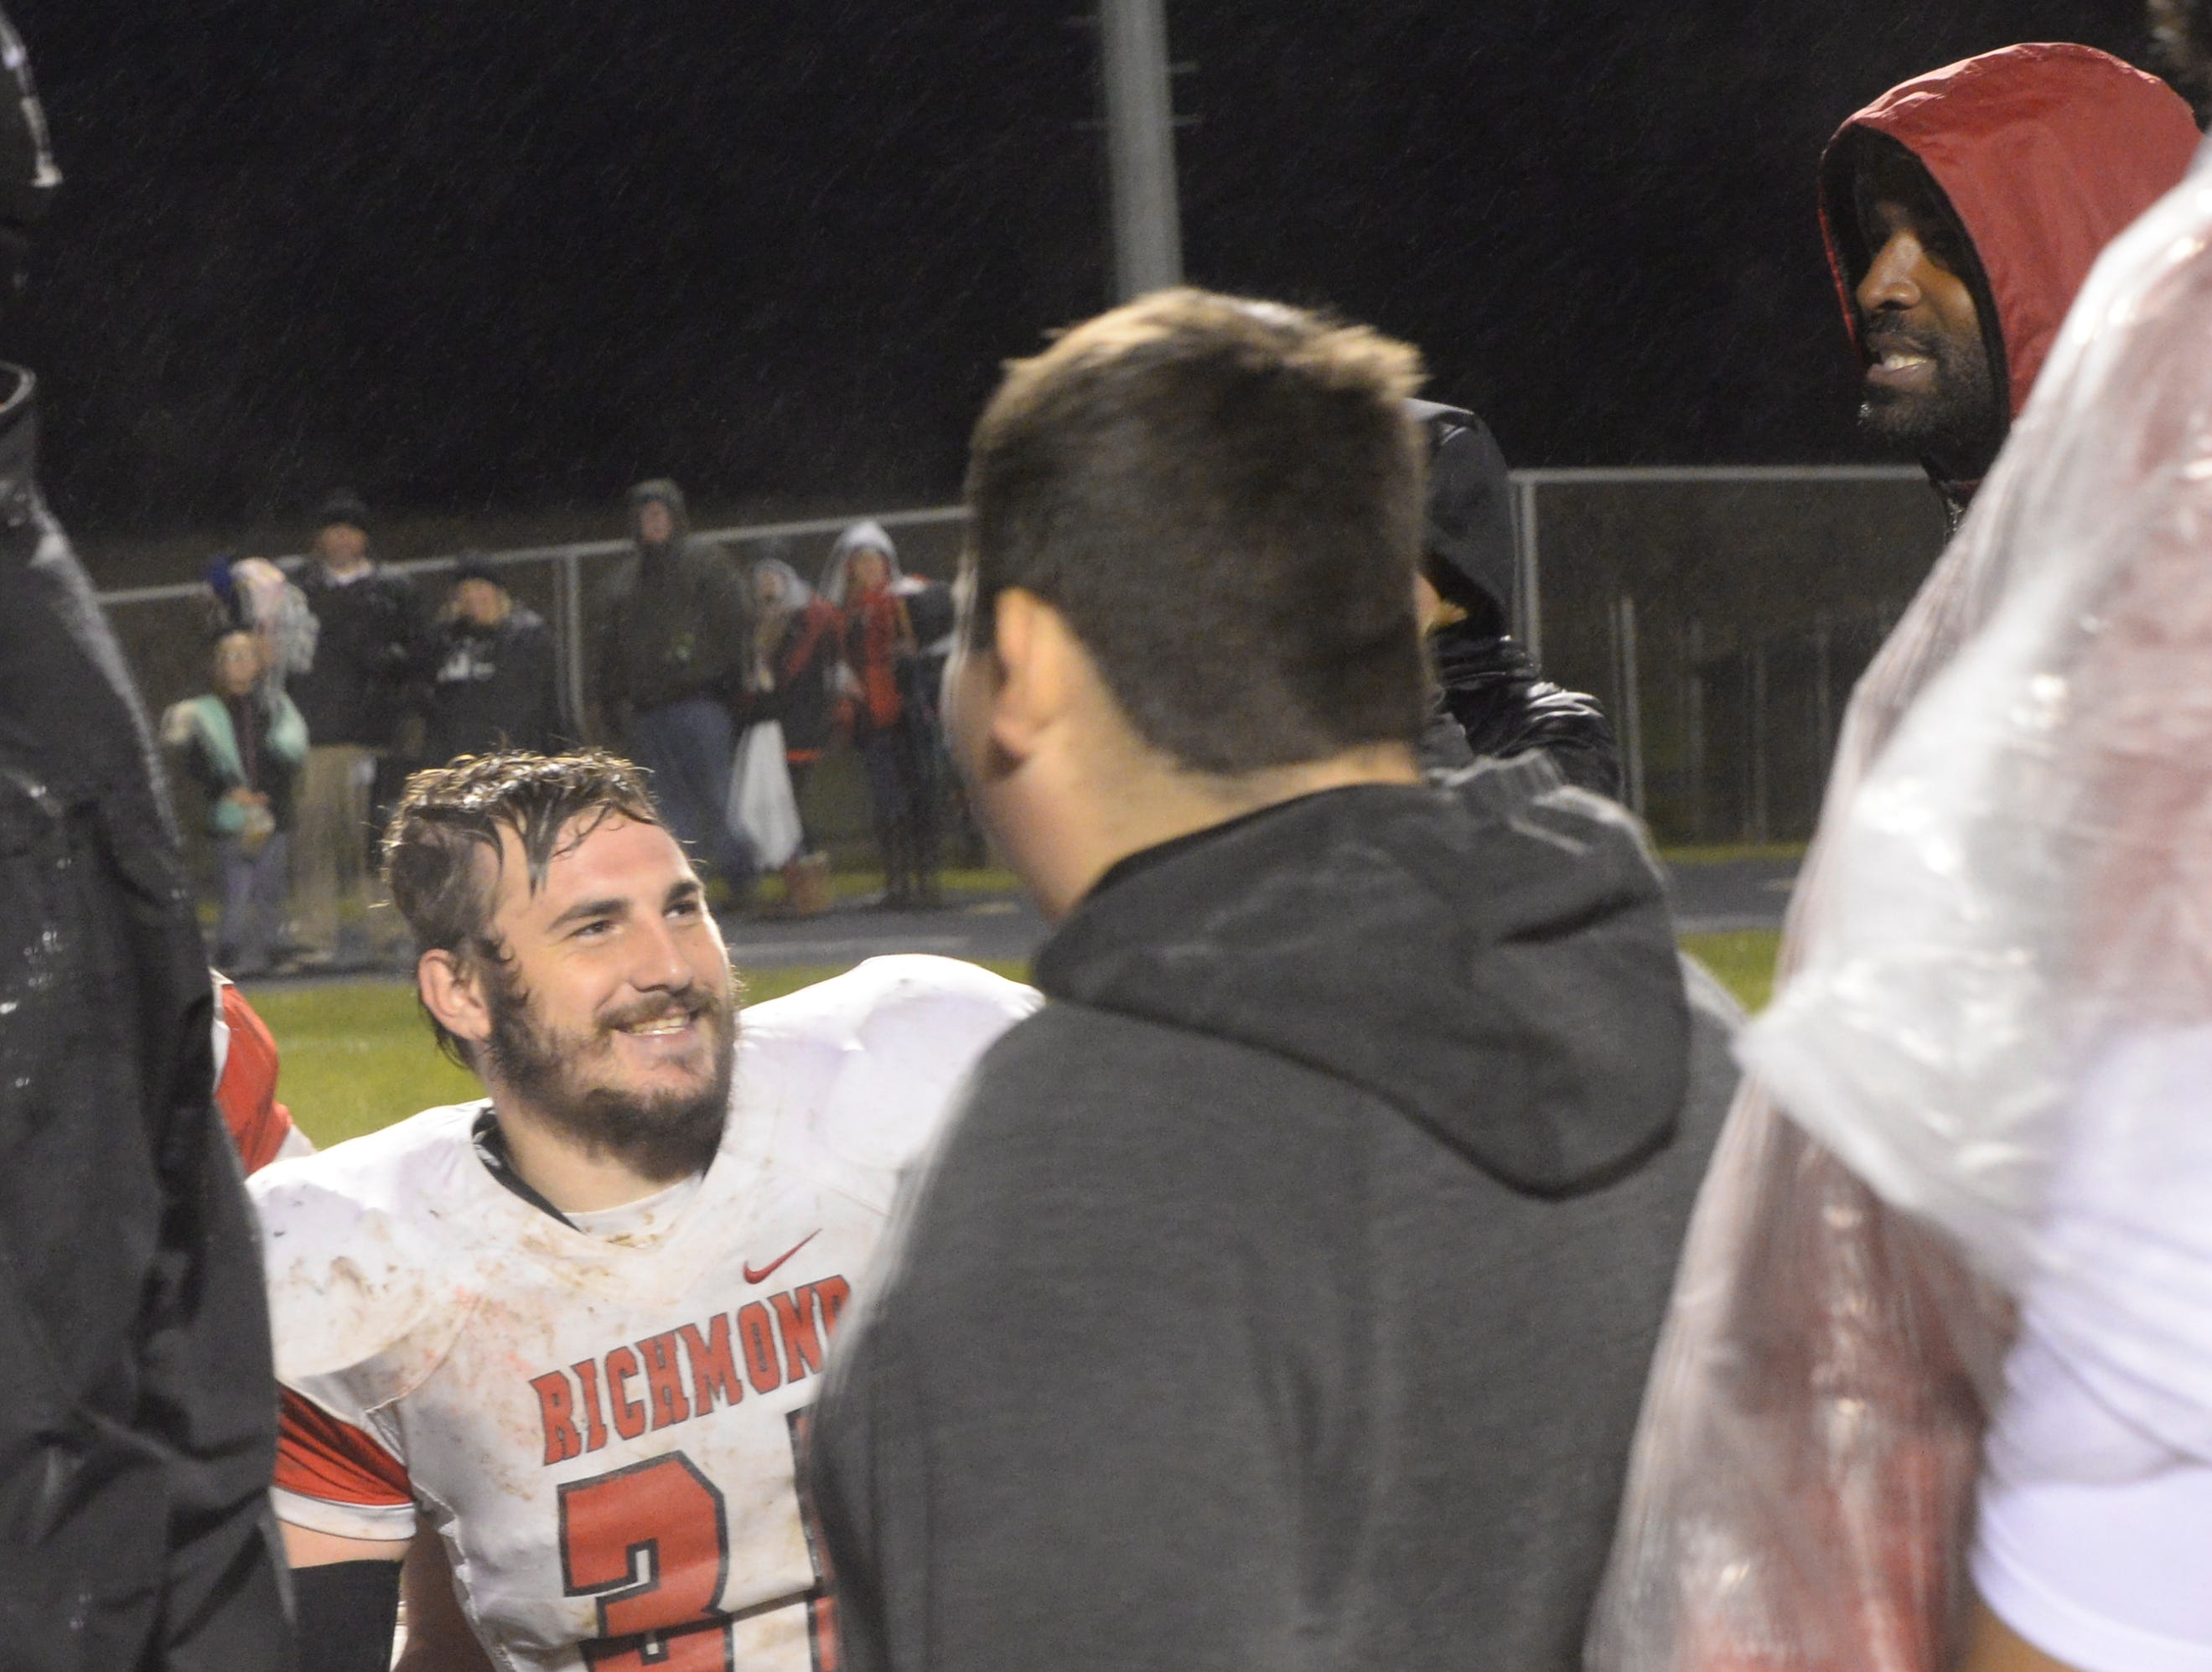 Brice Brown (35) smiles after the Richmond High School football team defeated Connersville 31-7 in the sectional opener Friday, Oct. 19, 2018.